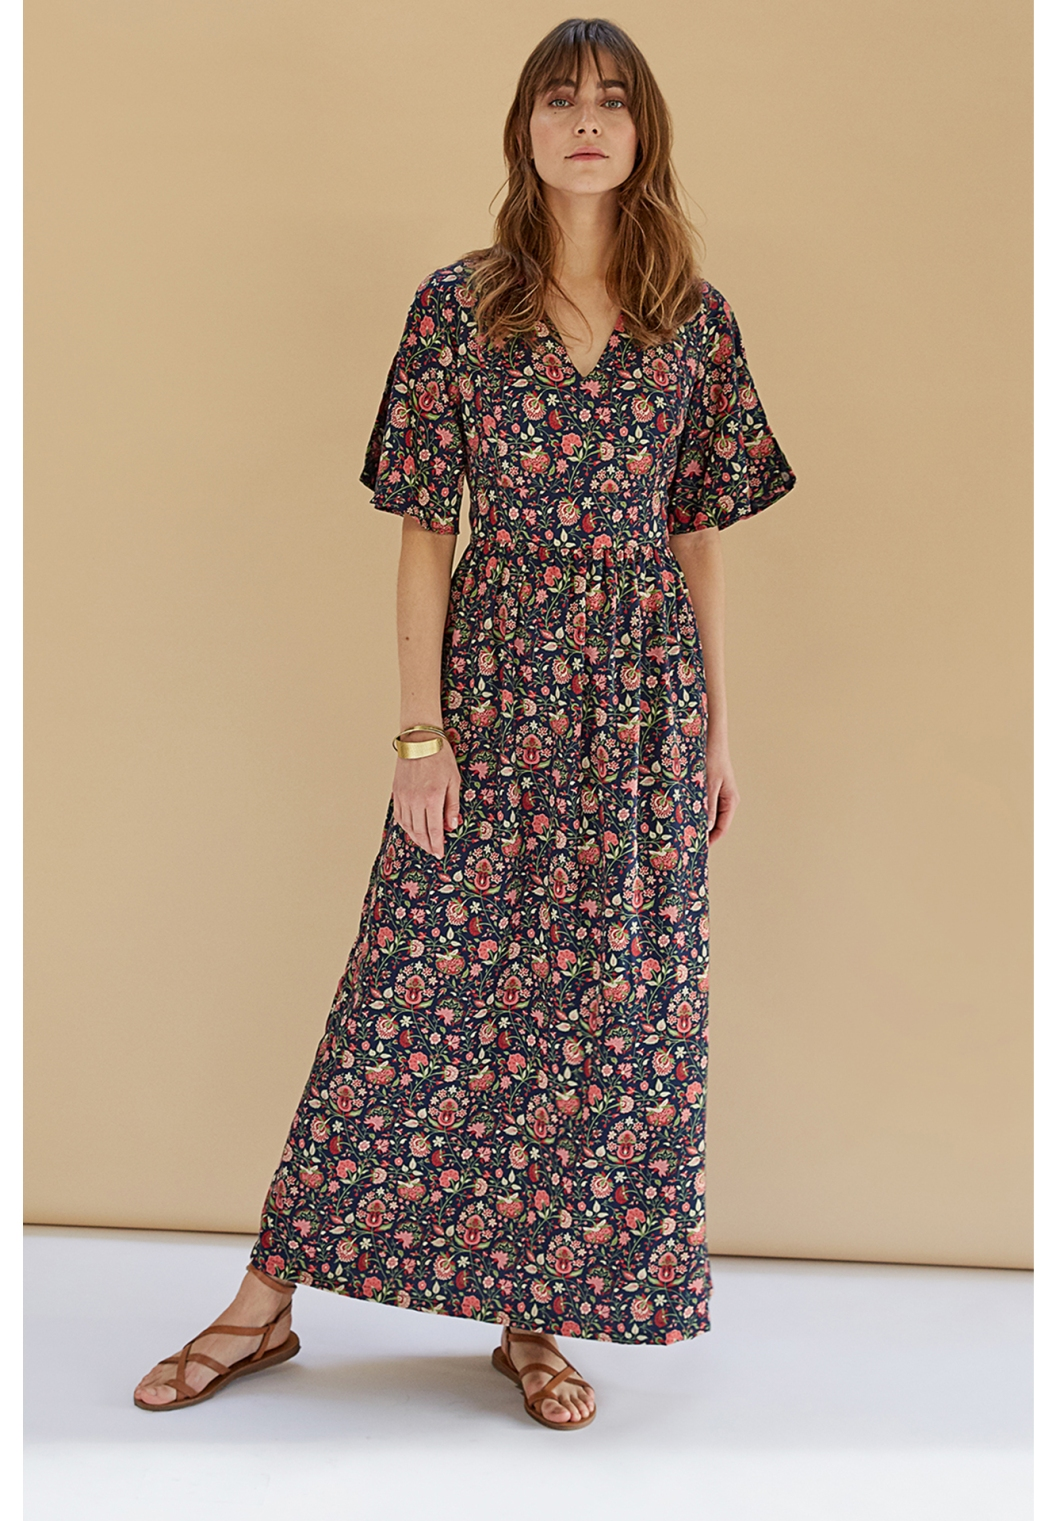 Floral print maxi dress of pink and green flowers on a base of dark blue.